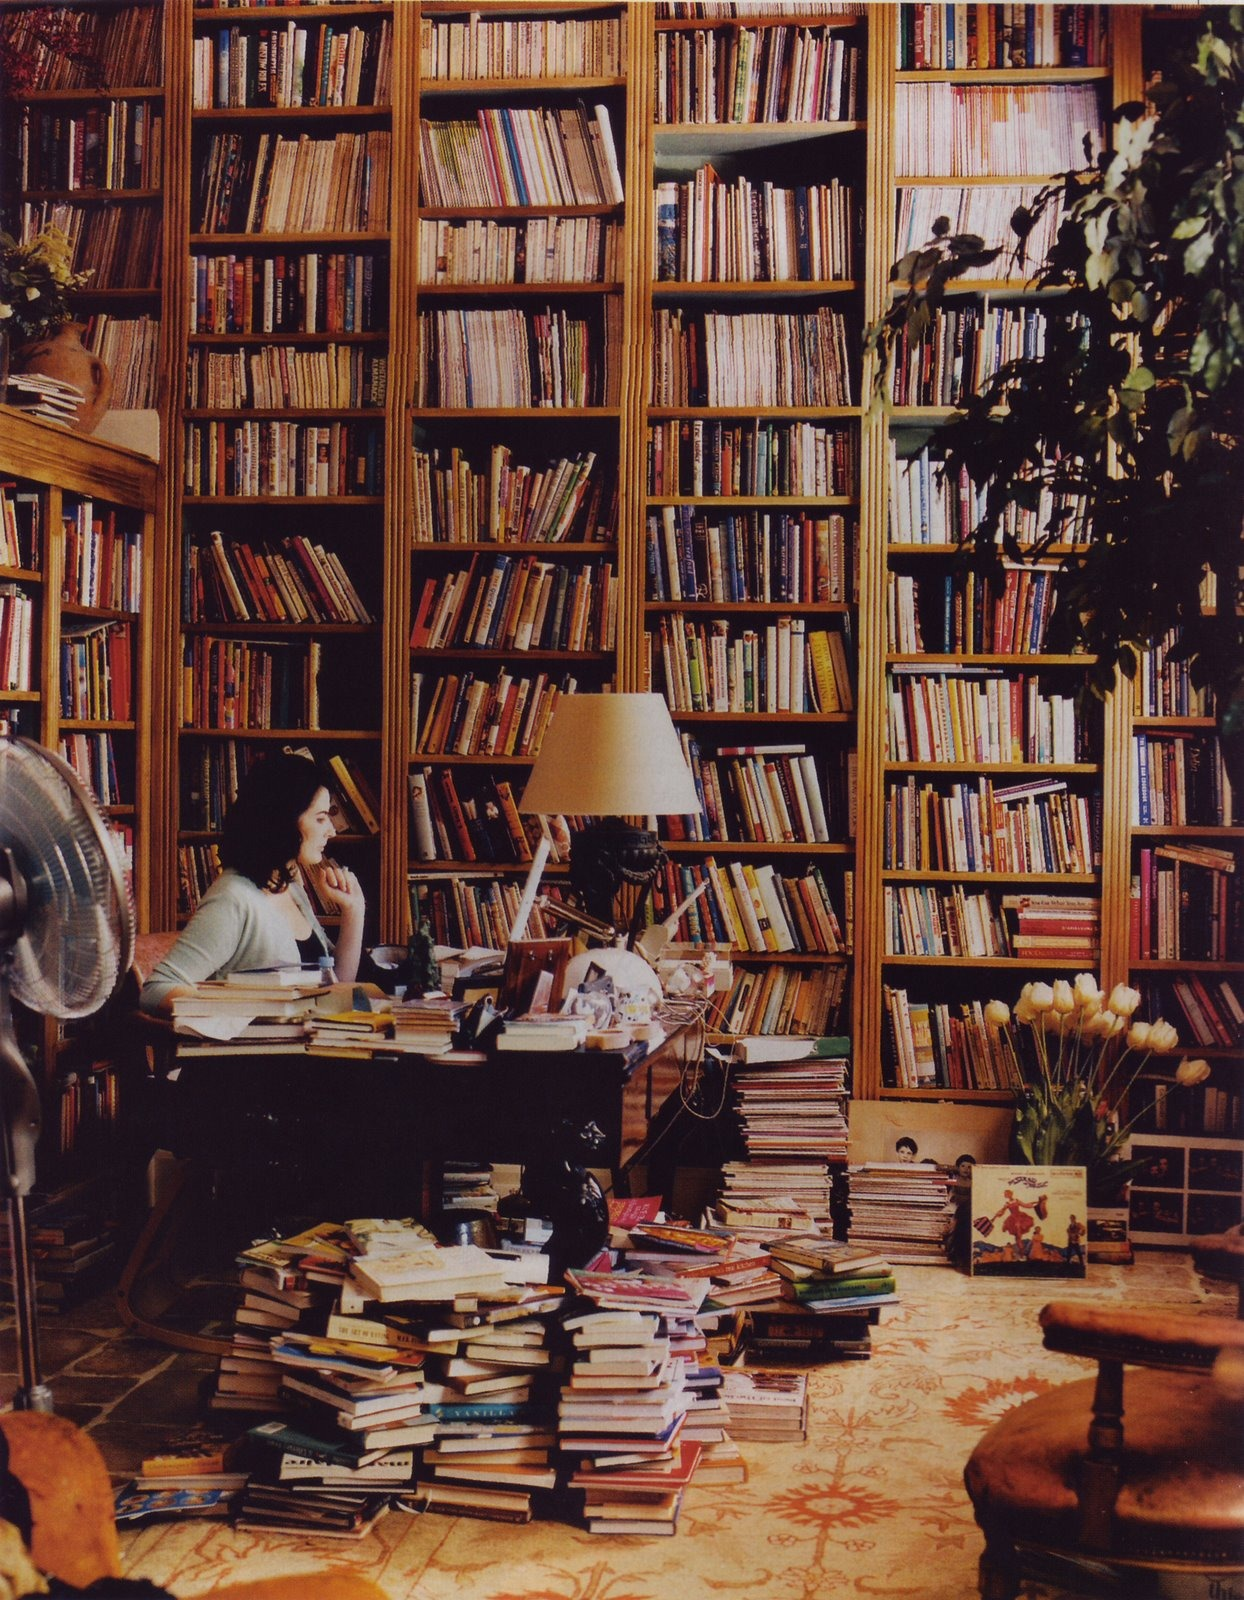 Nigella Lawson in her home library | Lunch & Latte